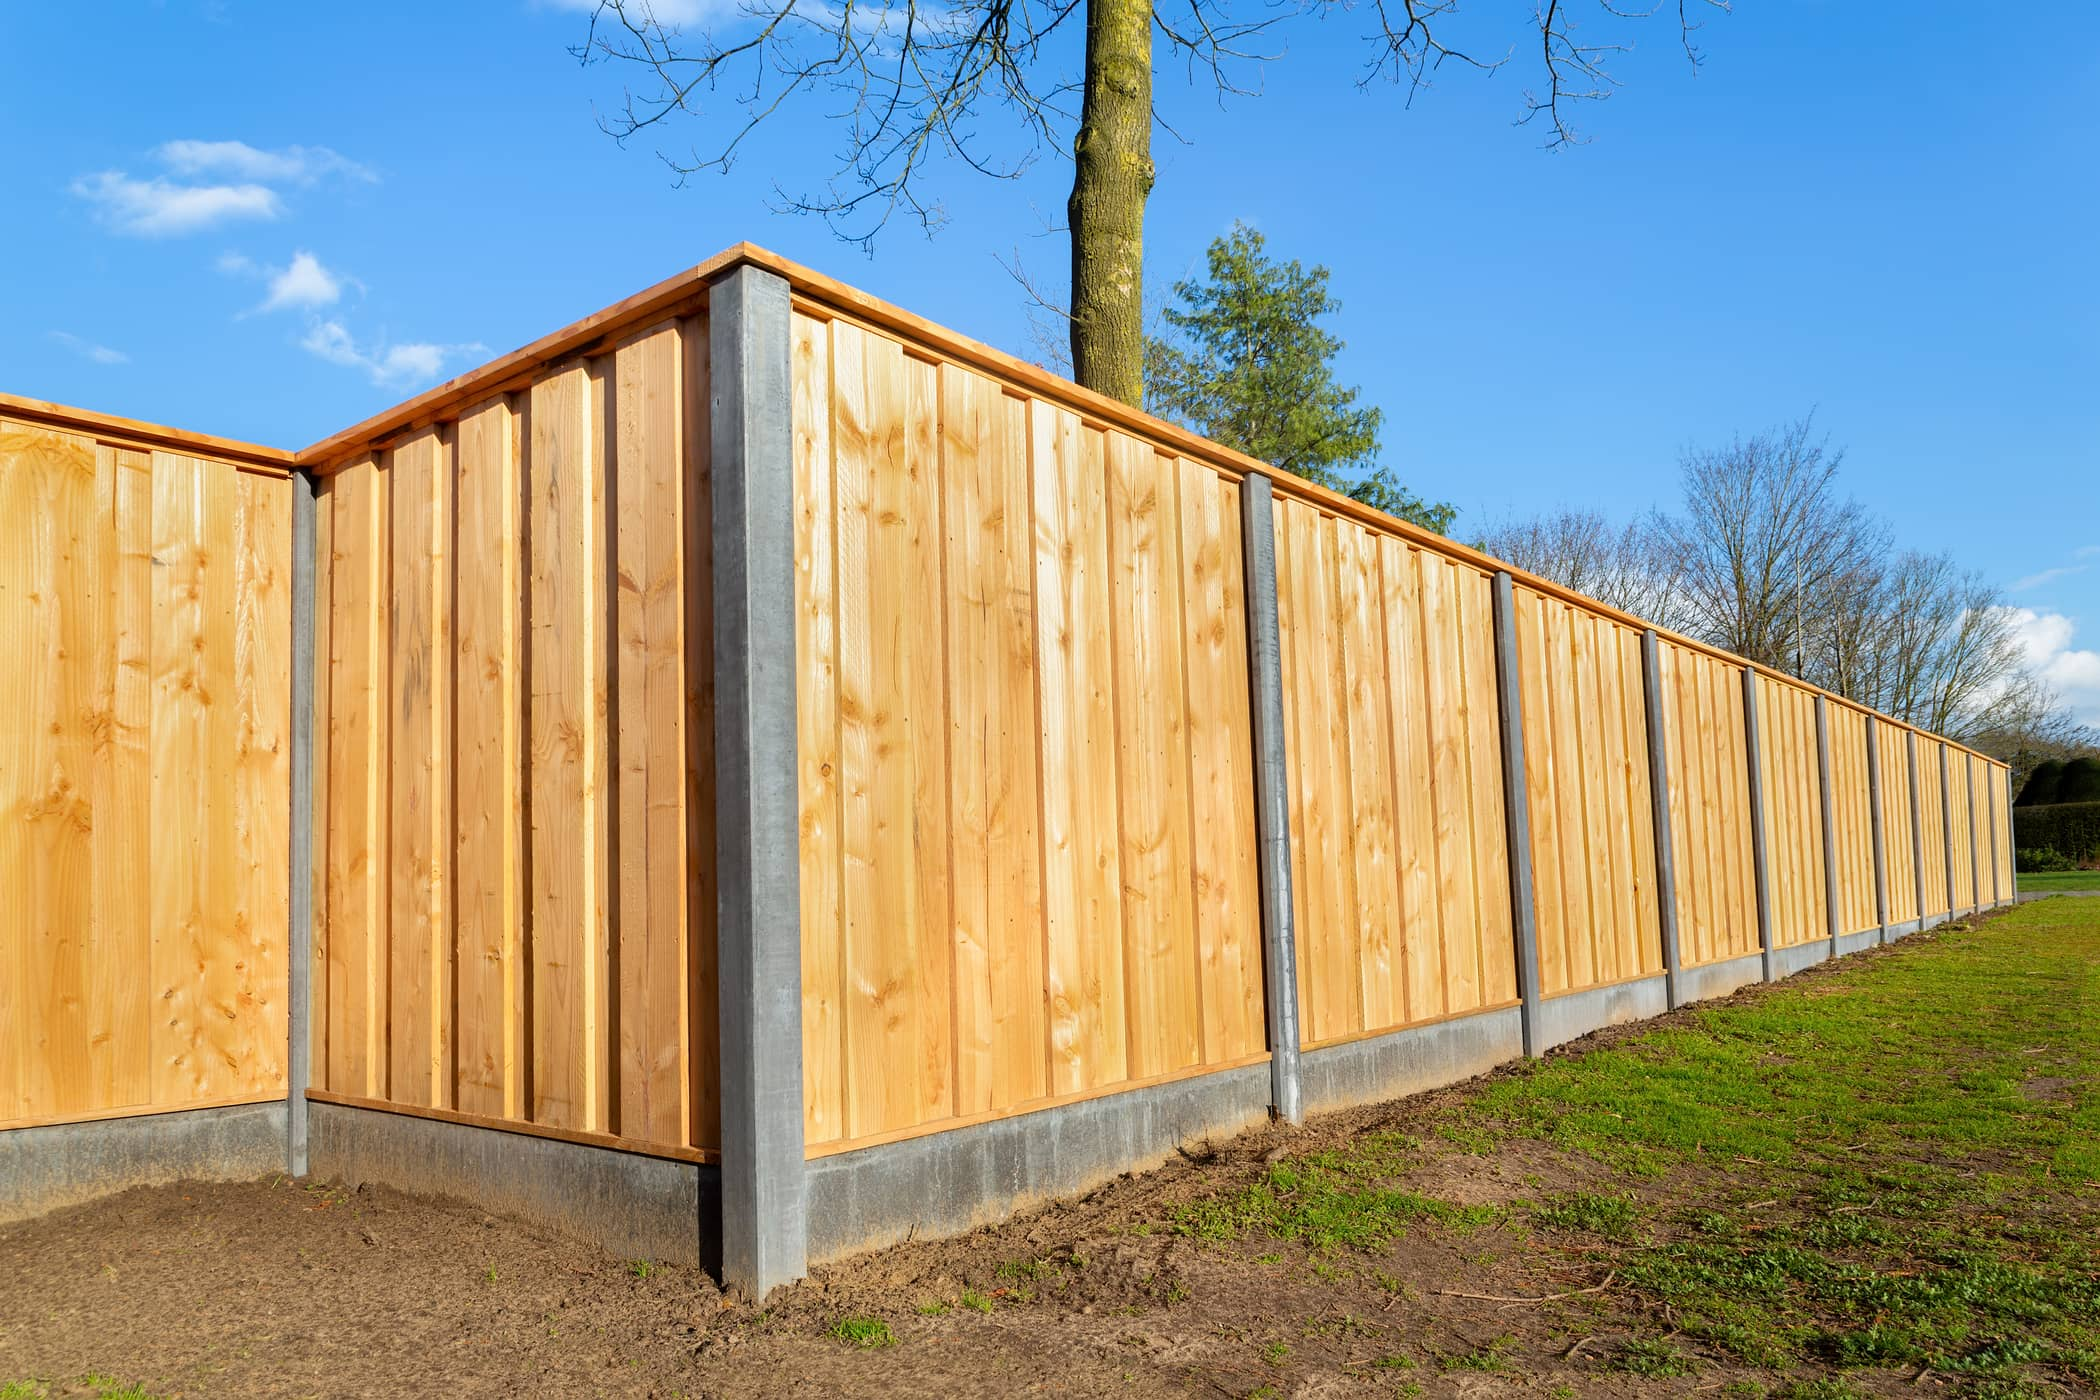 This image shows a fence that is made of both wood and concrete for extra support.